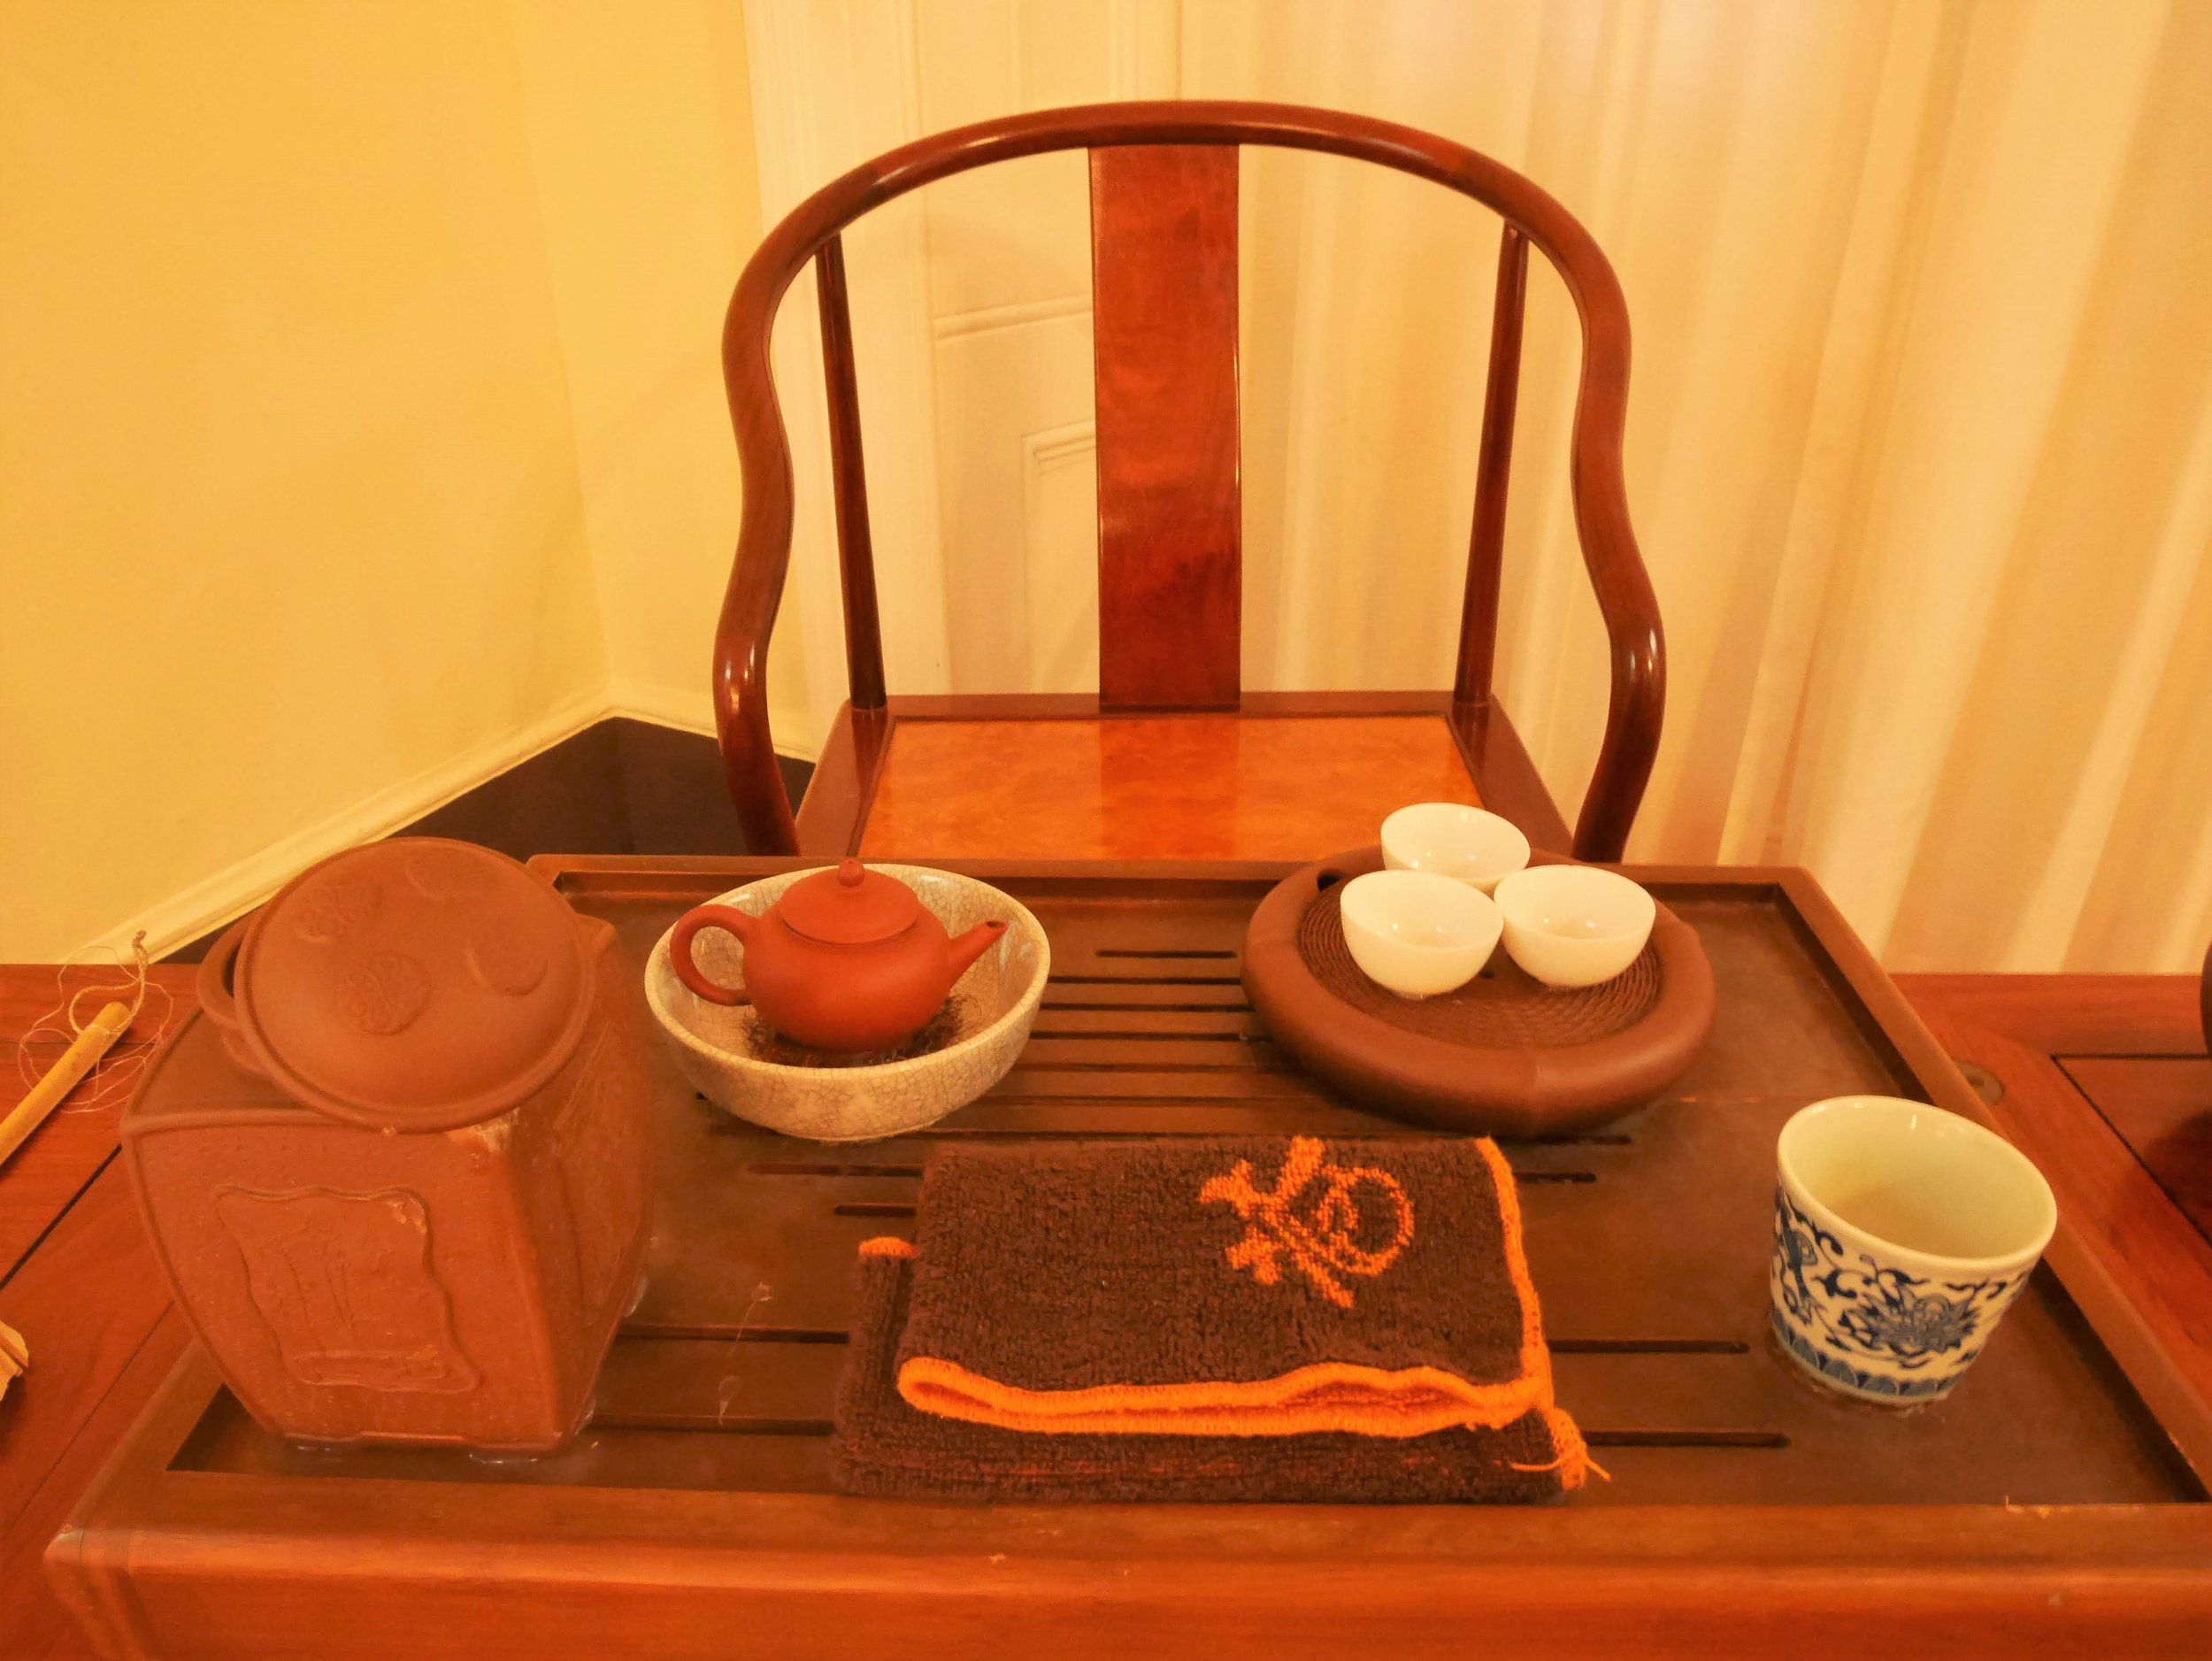 a traditional Chinese tea ceremony